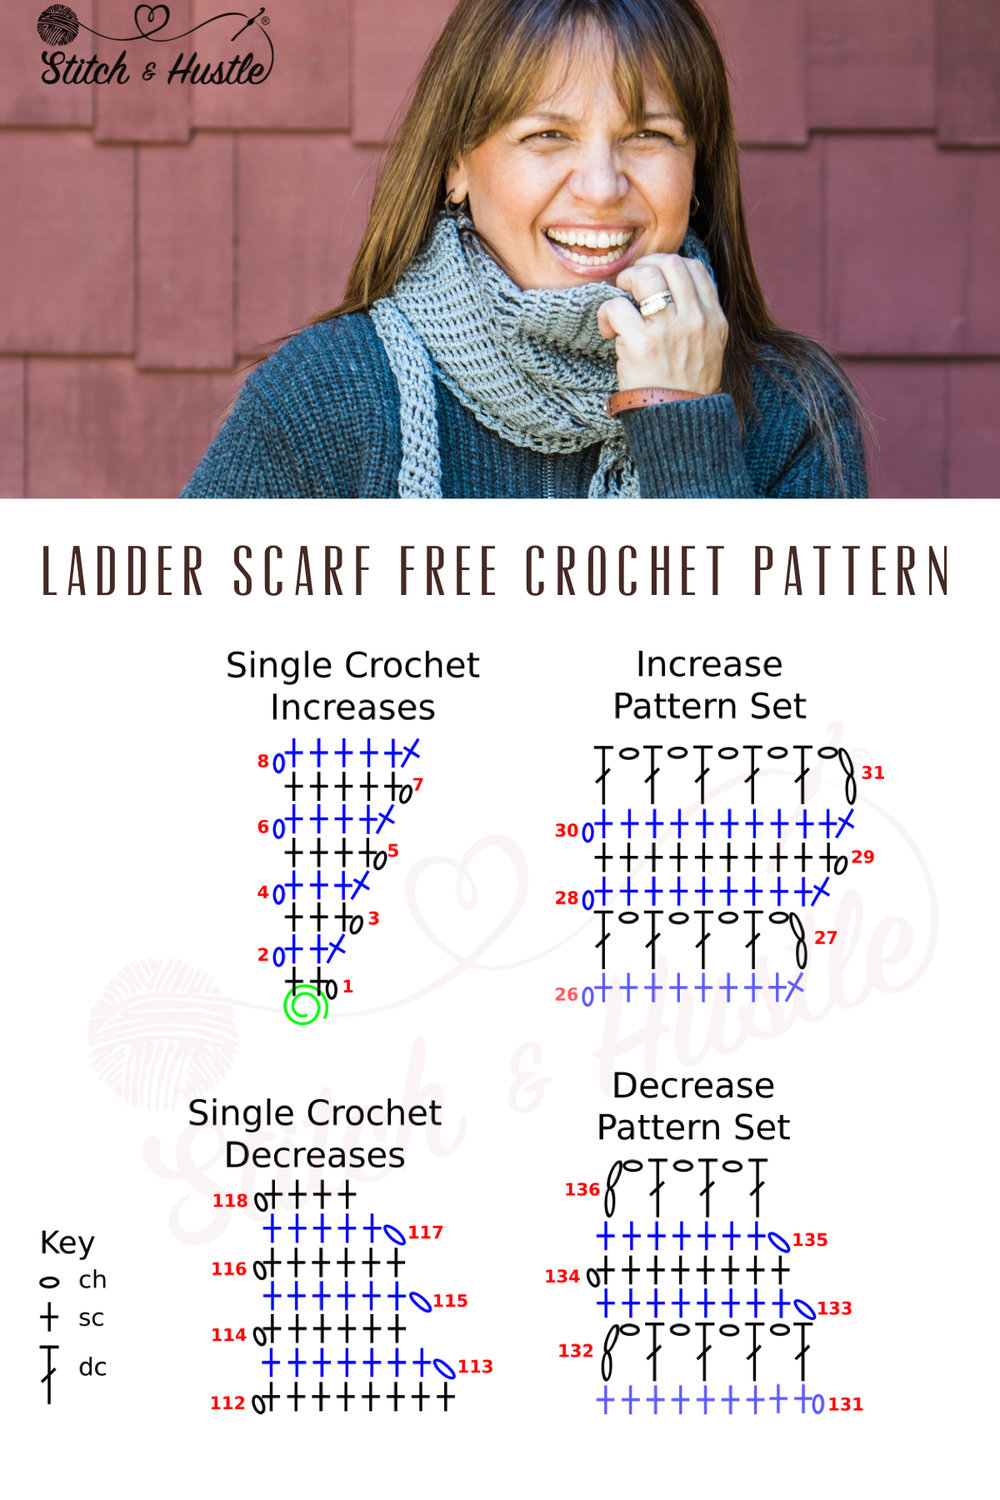 crochet_ladder_scarf_free_pattern_12.jpg